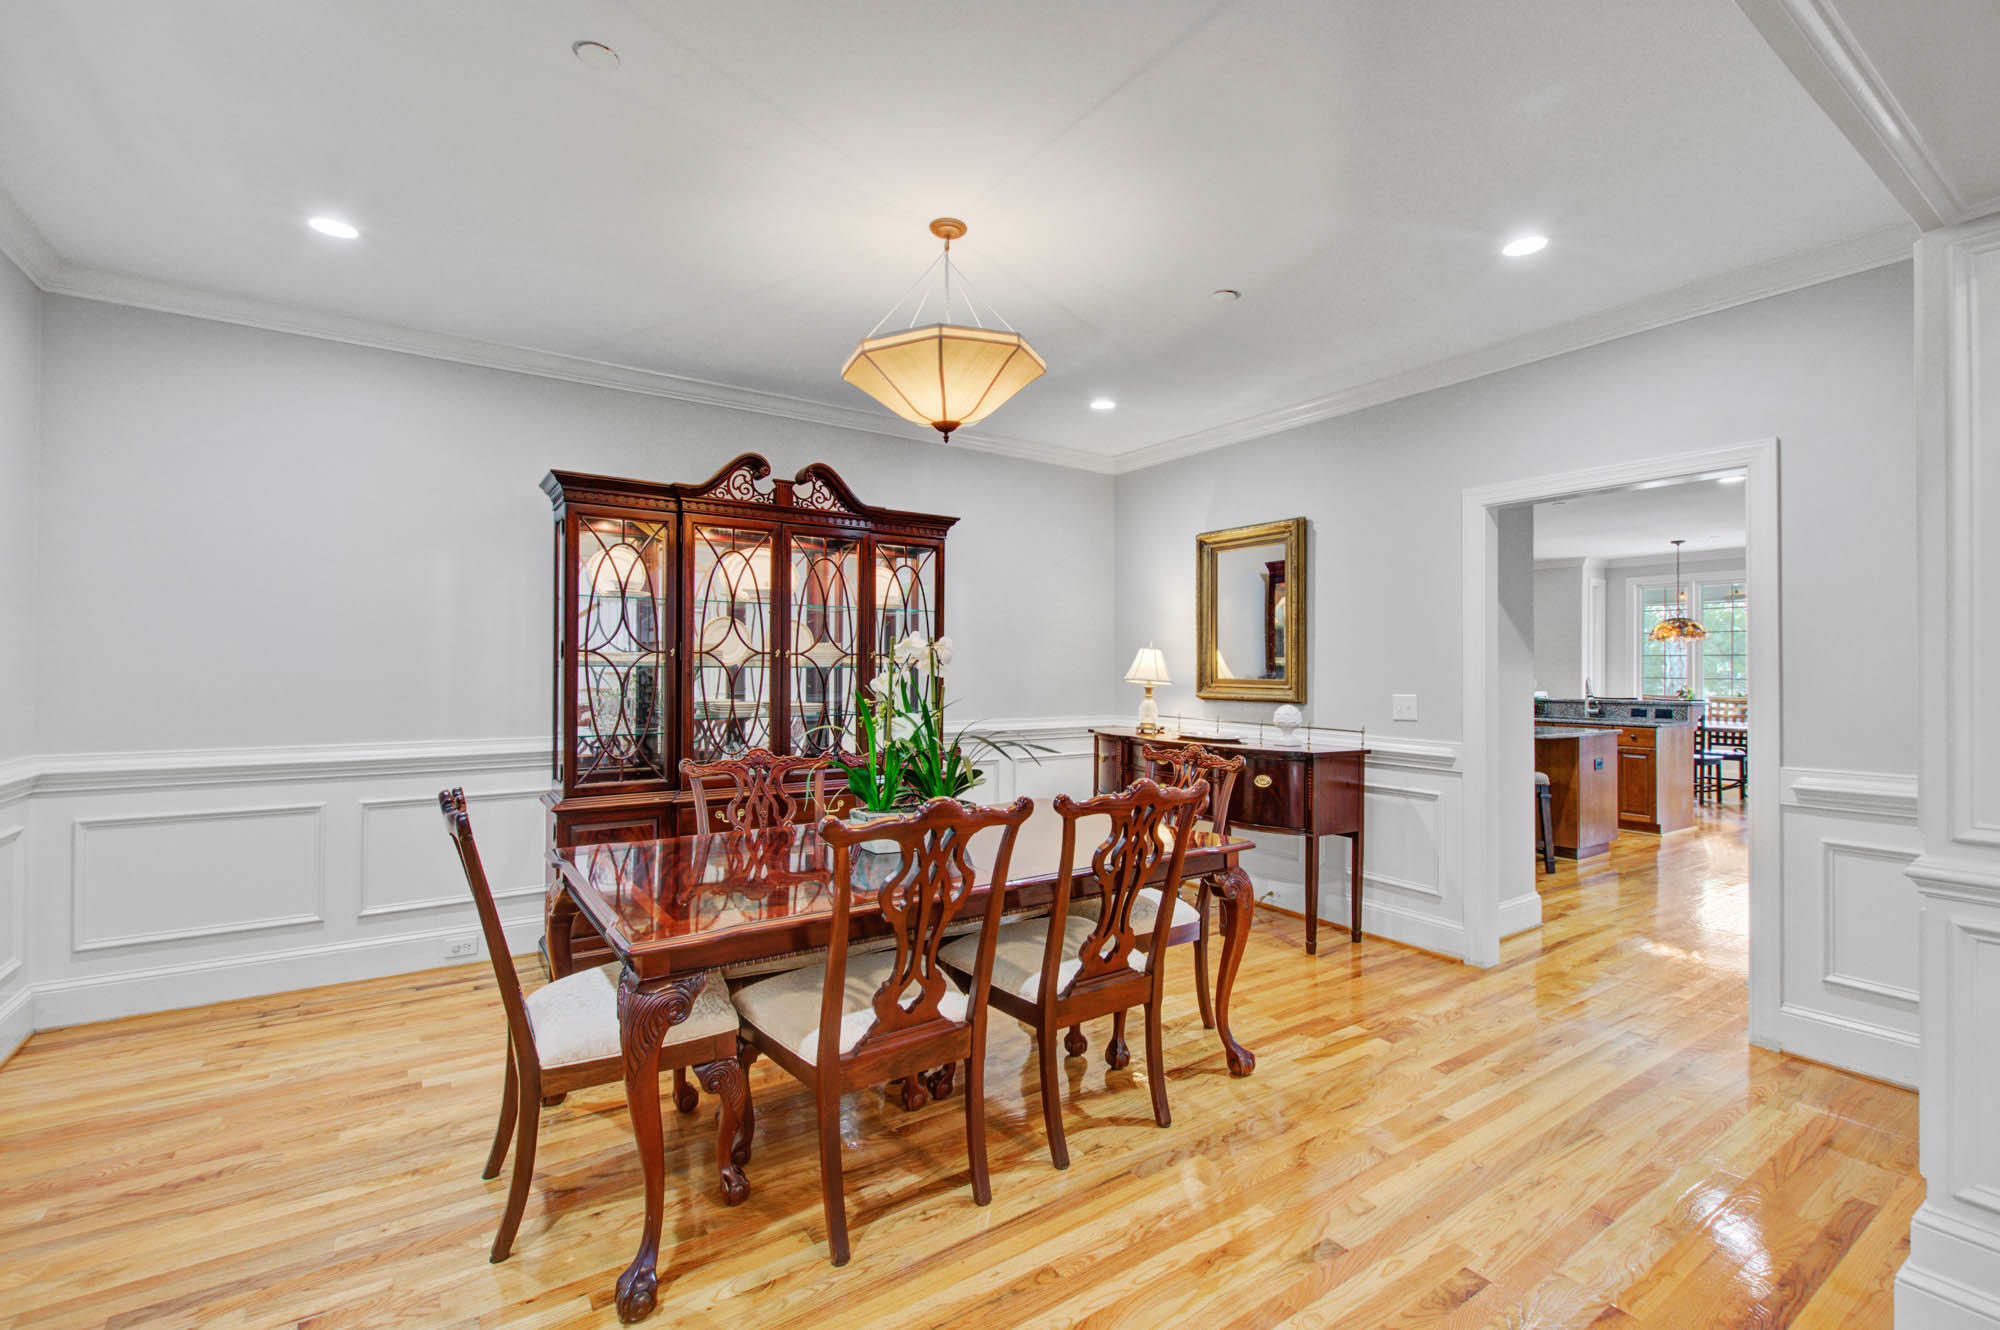 Dunes West Homes For Sale - 2069 Shell Ring, Mount Pleasant, SC - 51